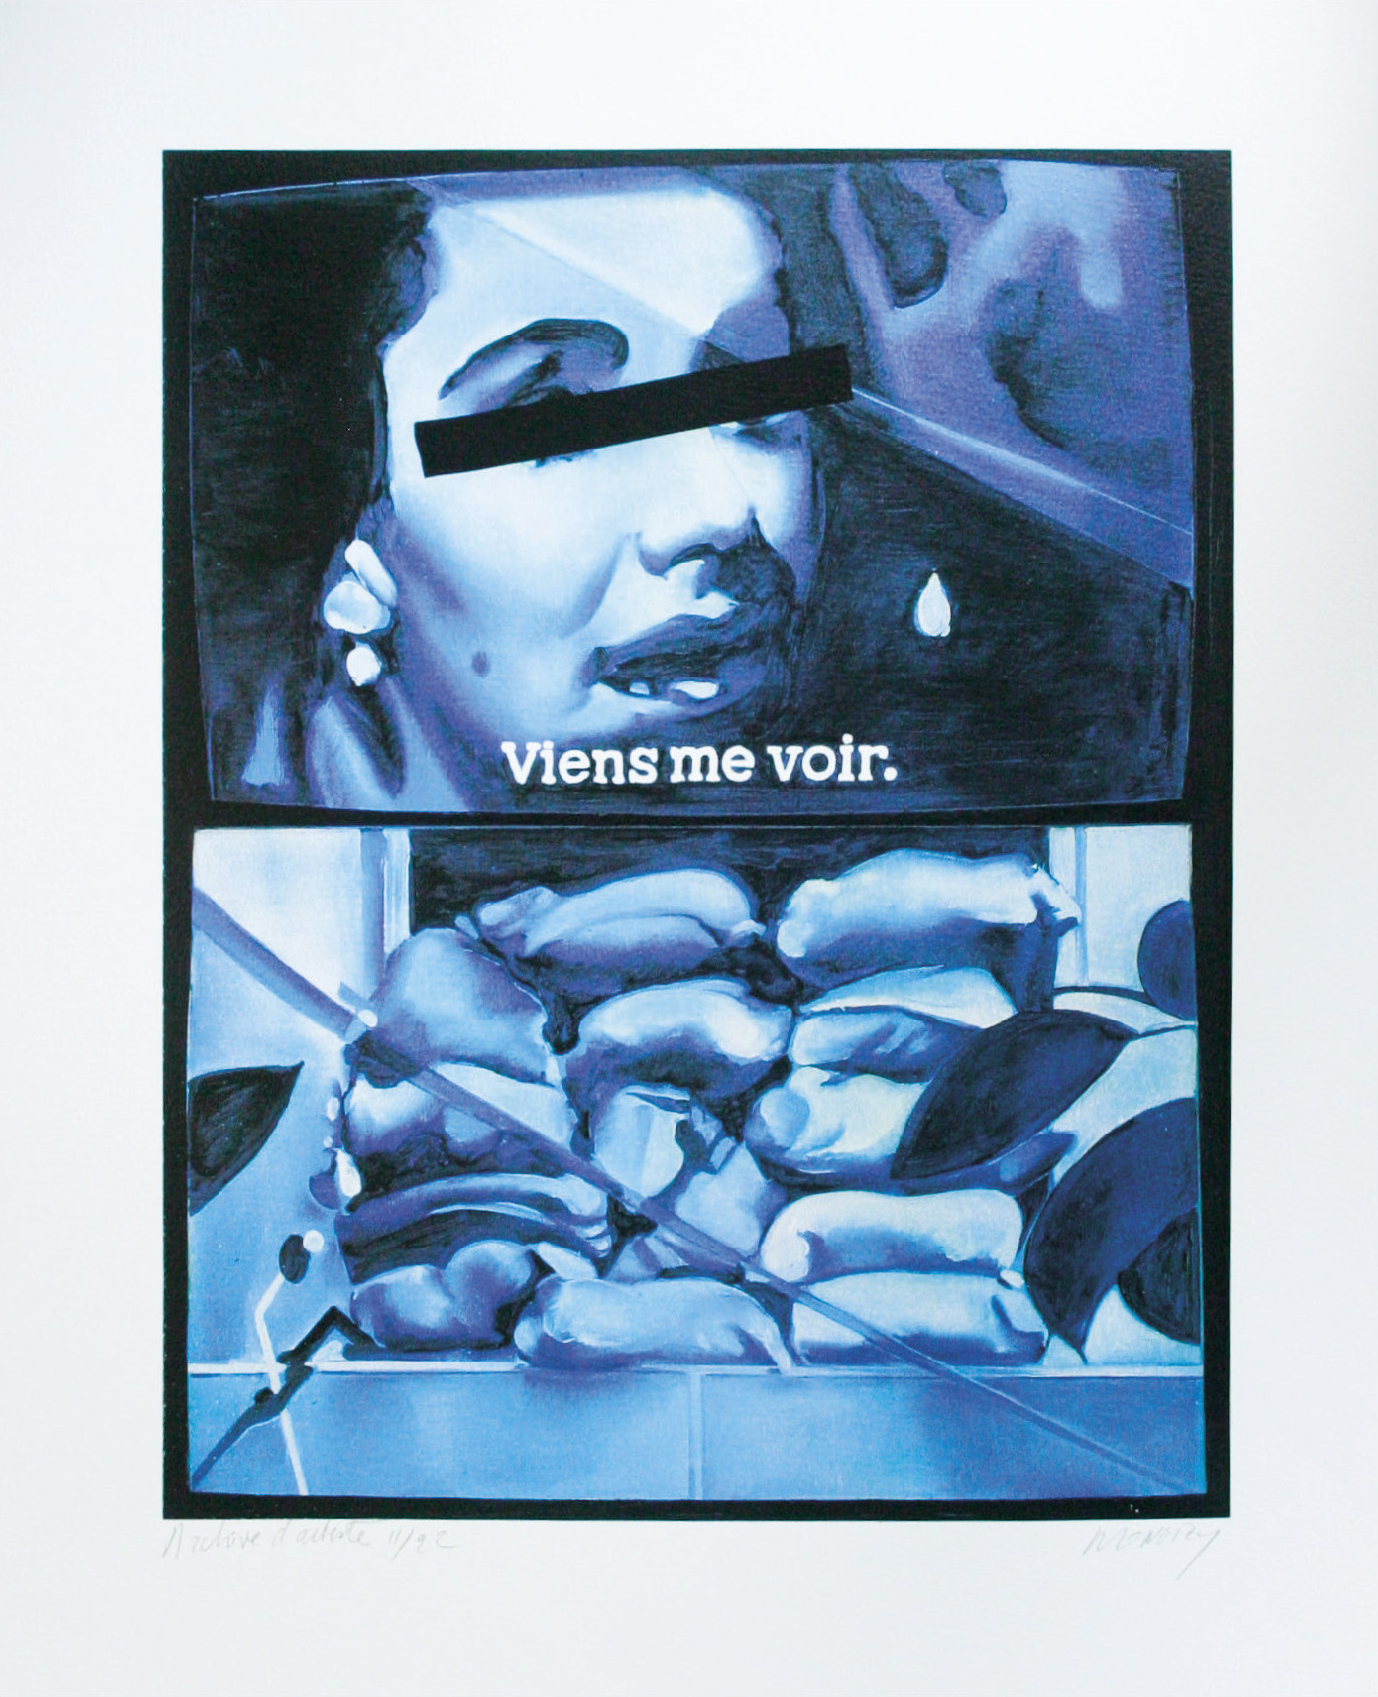 Lot 107 - Monory Jacques (1934) Untitled, 2005 - Serigraph Signed on lower right - 50 x 40 cm -